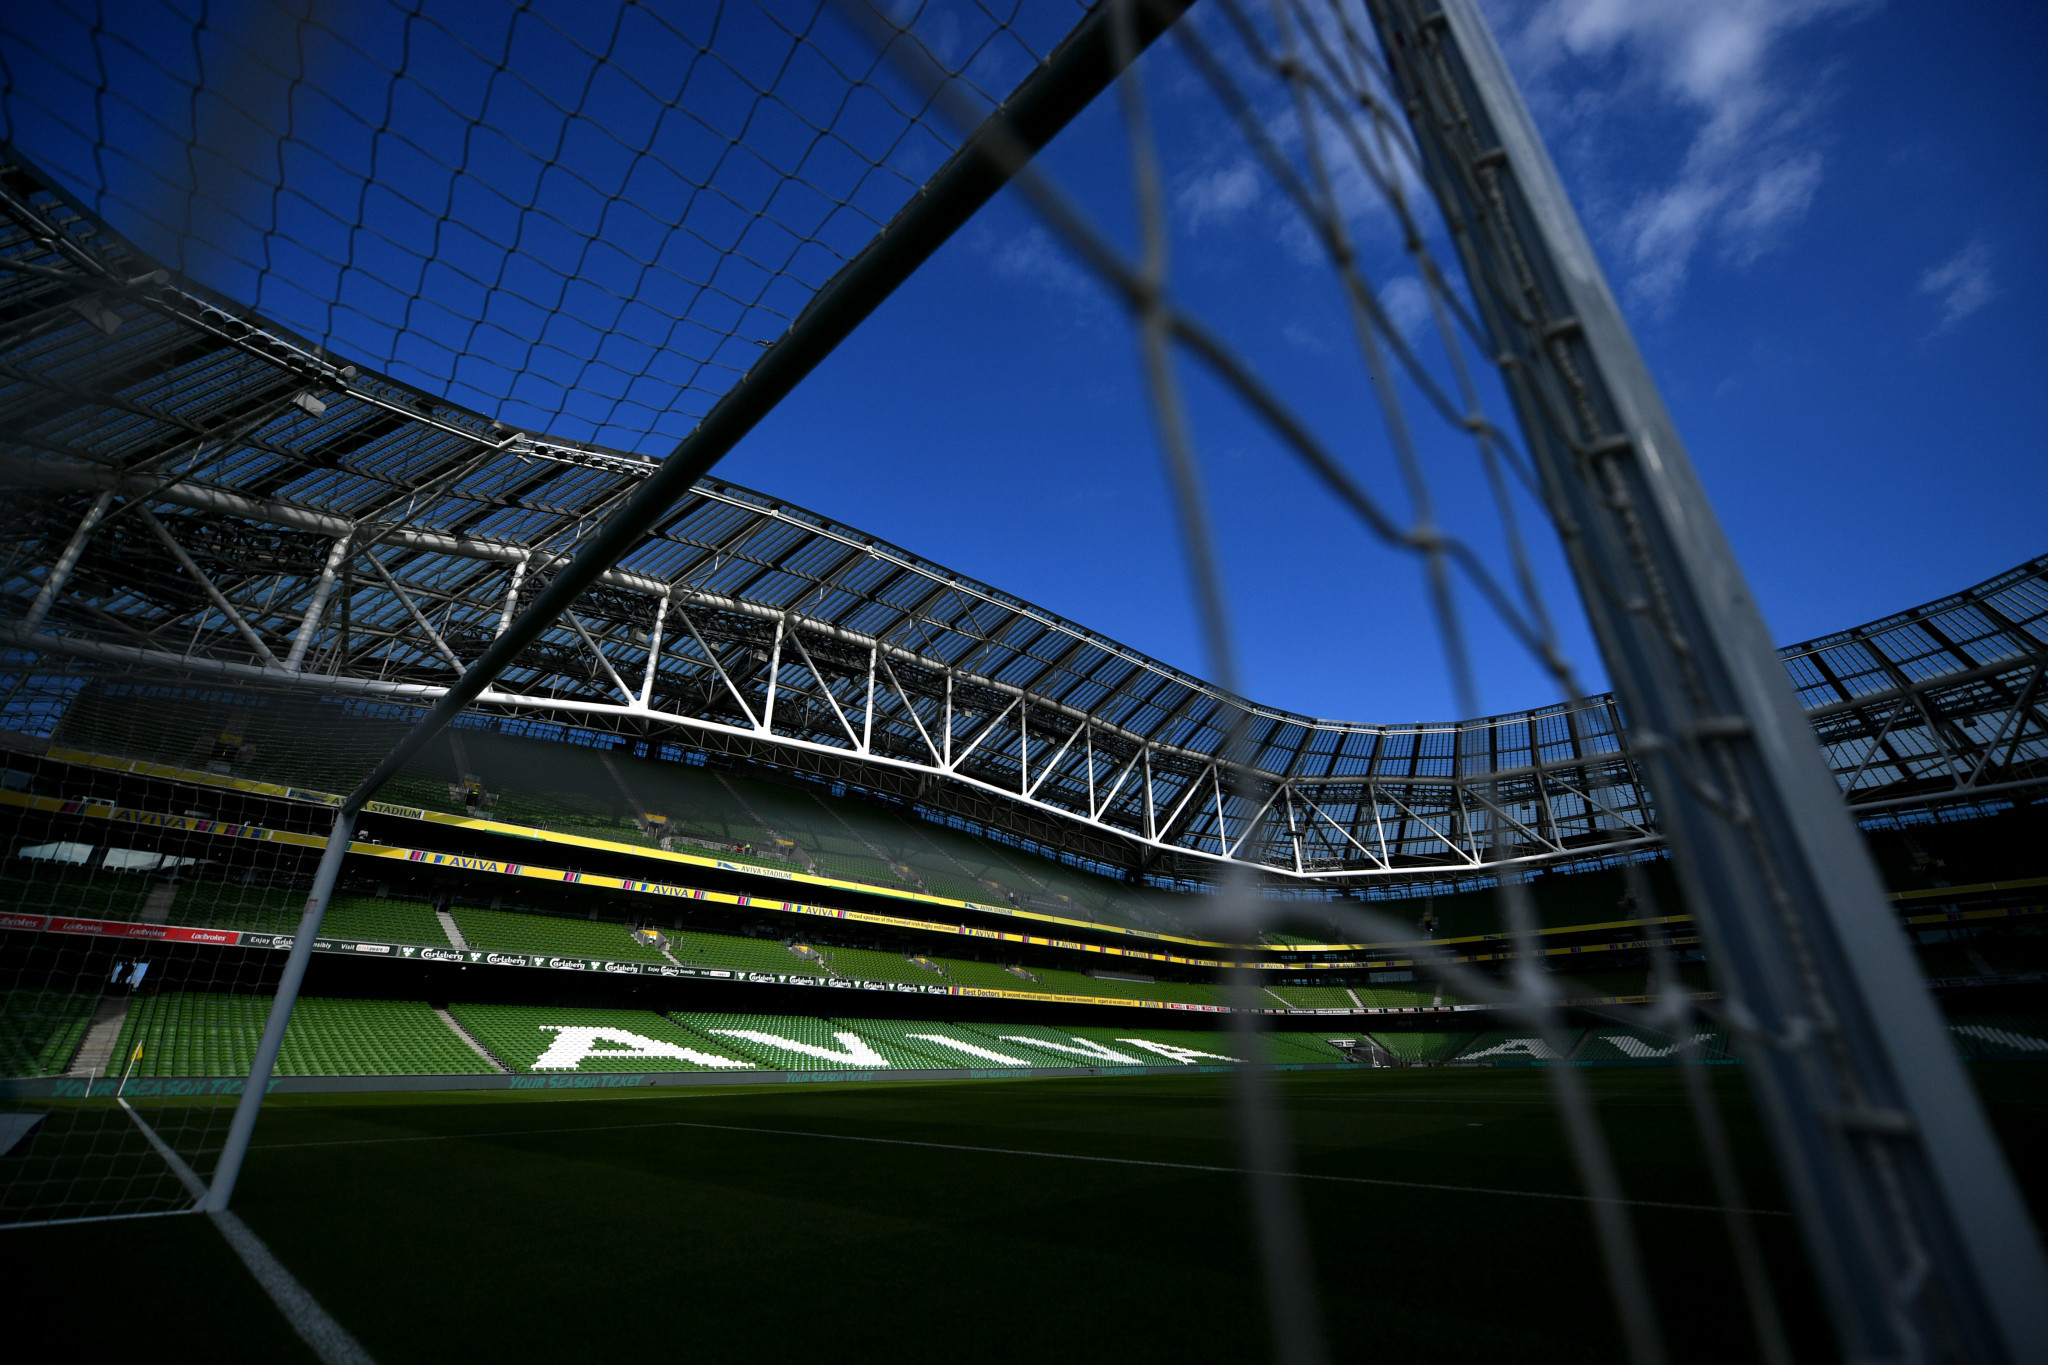 UEFA gives Dublin, Bilbao, Rome and Munich extra time to seek Euro 2020 fan guarantees